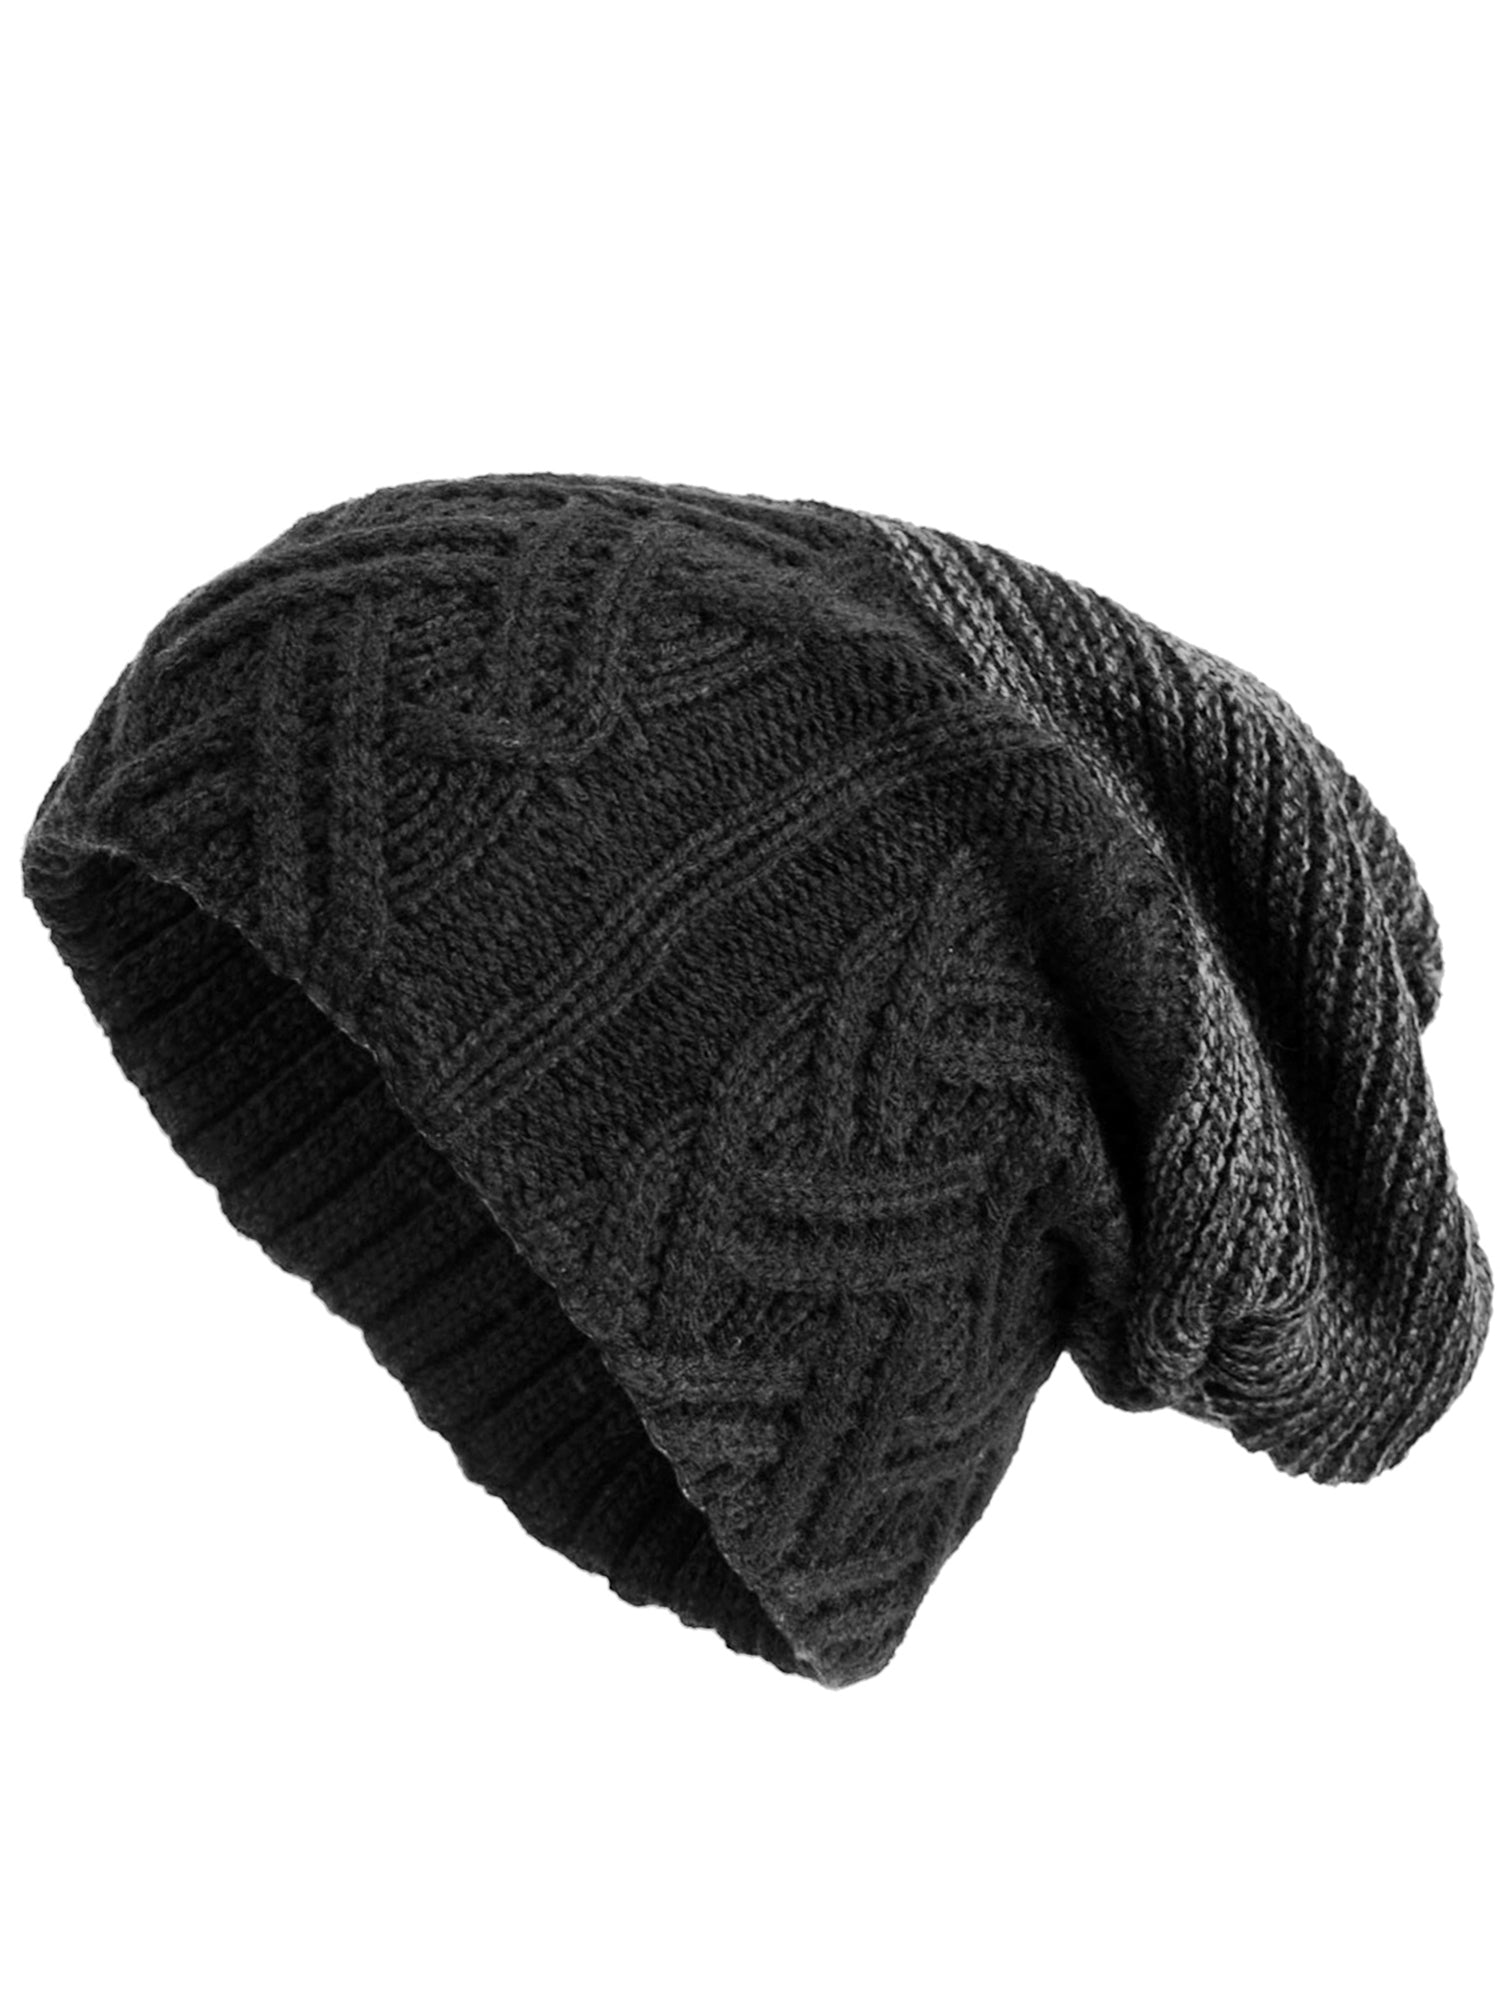 Mens Black Cable Knit Winter Slouchy Baggy Hat With Fur Lining ... a359d7ccdae